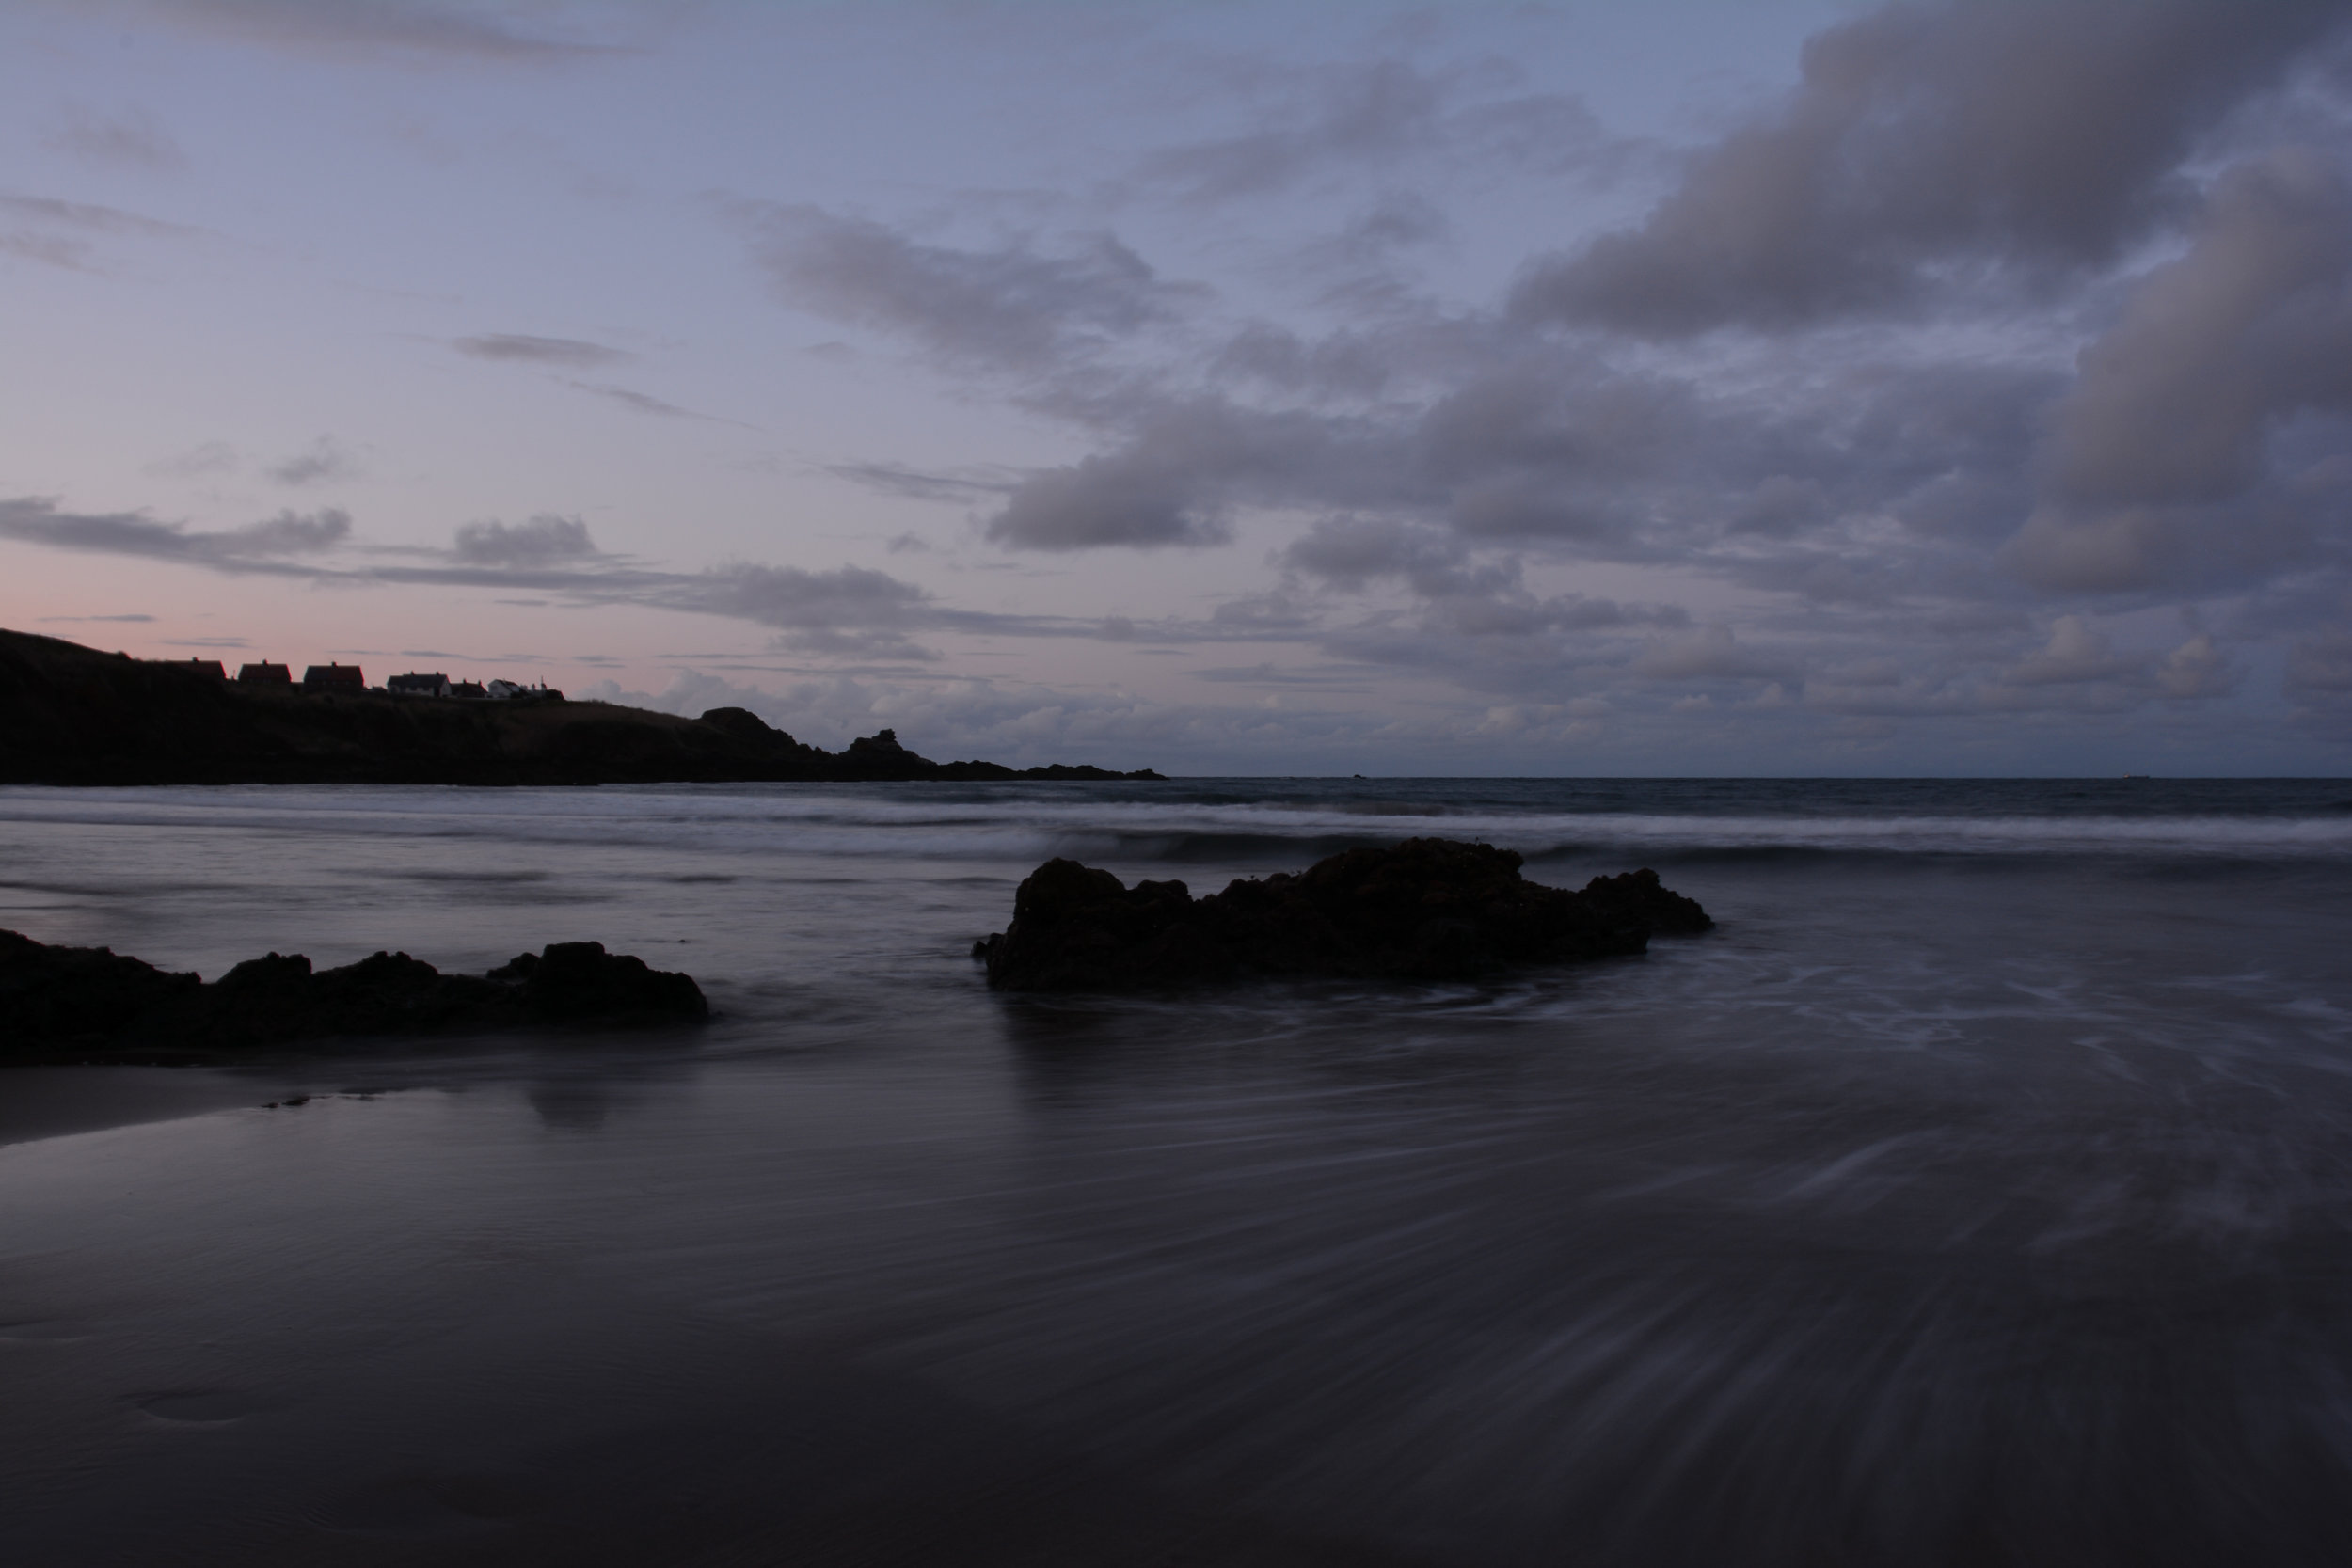 Coldingham Bay | Long Exposure. Nikon D7100 (18-105mm f/3.5-5.6G ED VR Lens)